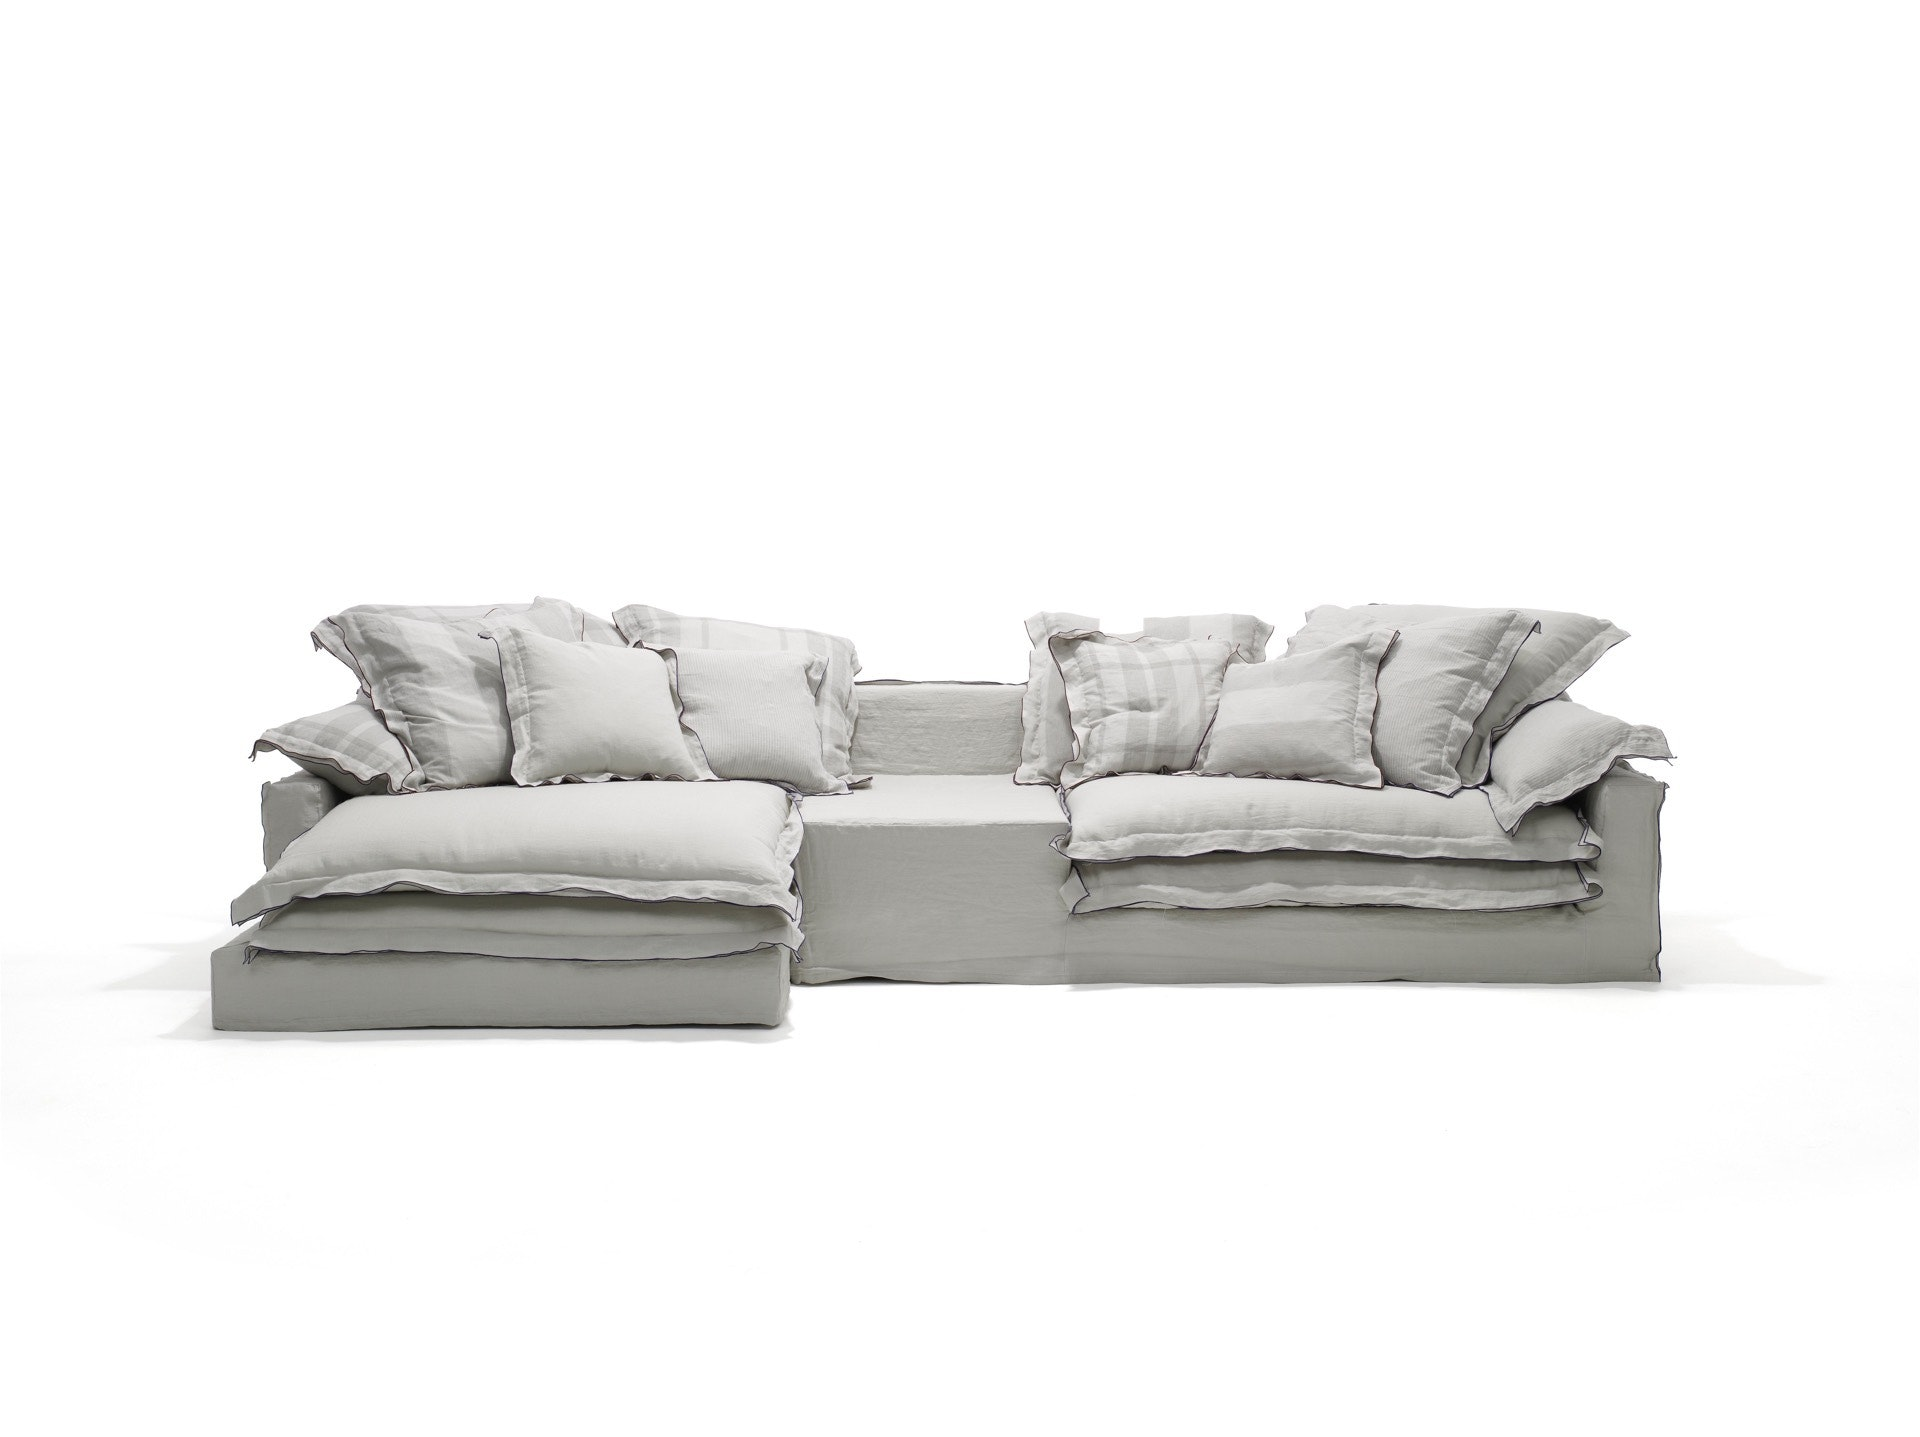 Jans New Sofa 3 Paola Navone Low